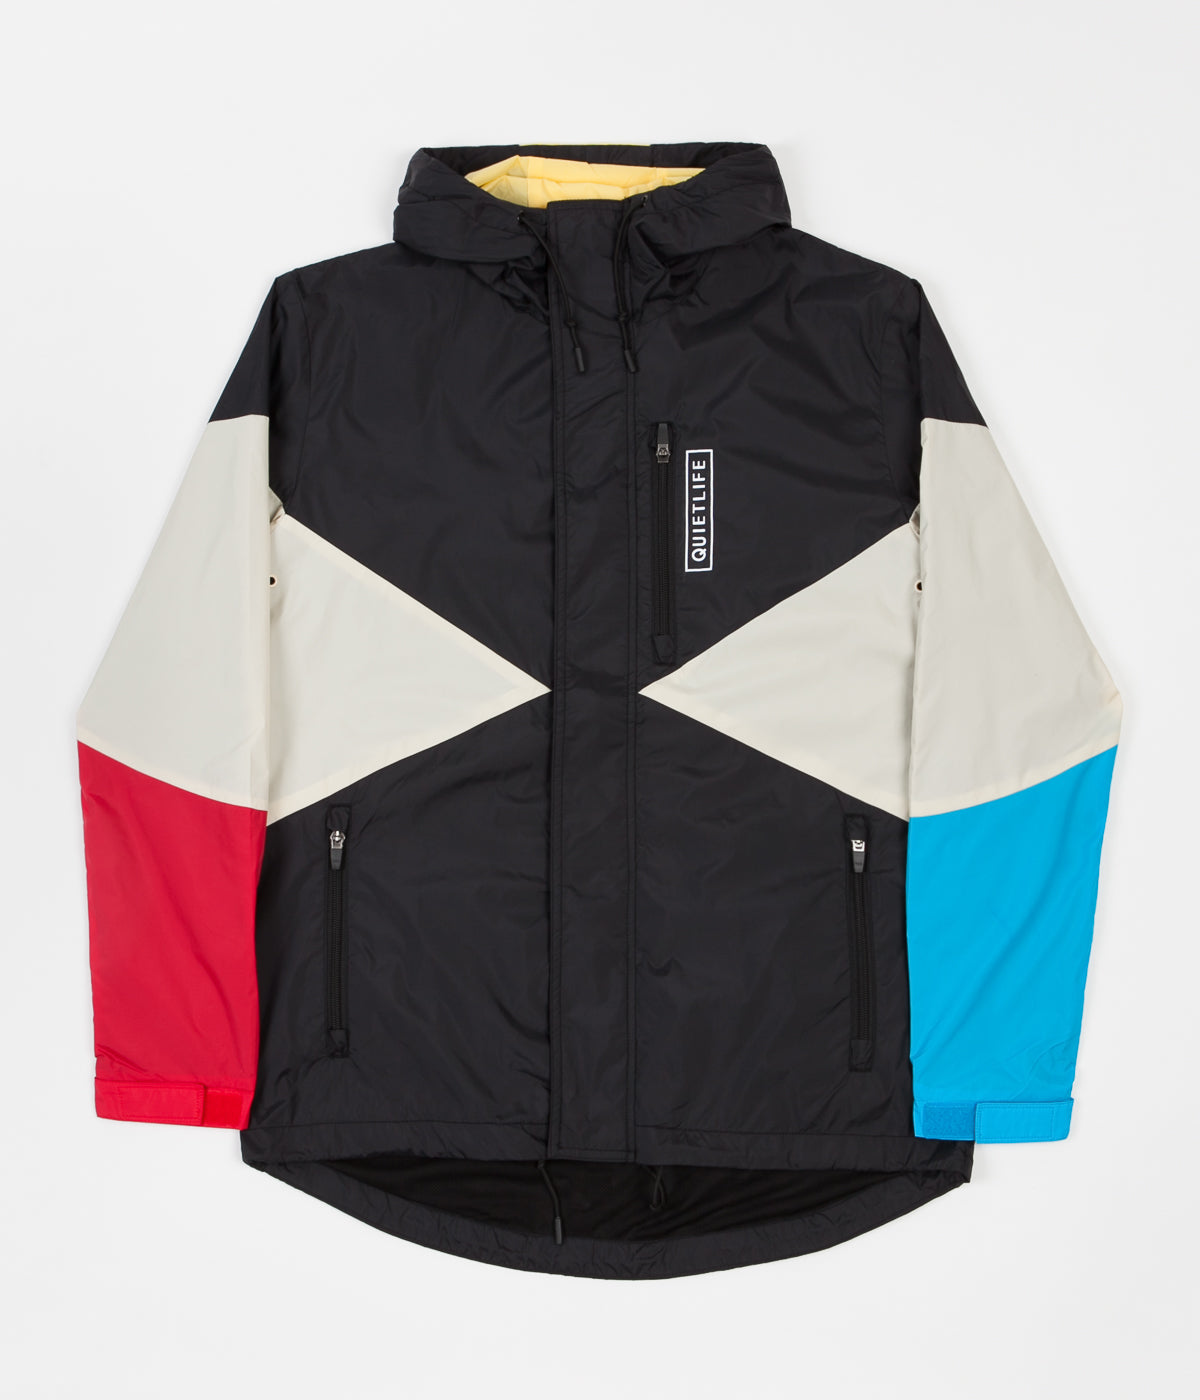 The Quiet Life Pacific Windbreaker Jacket - Black / Red / Blue